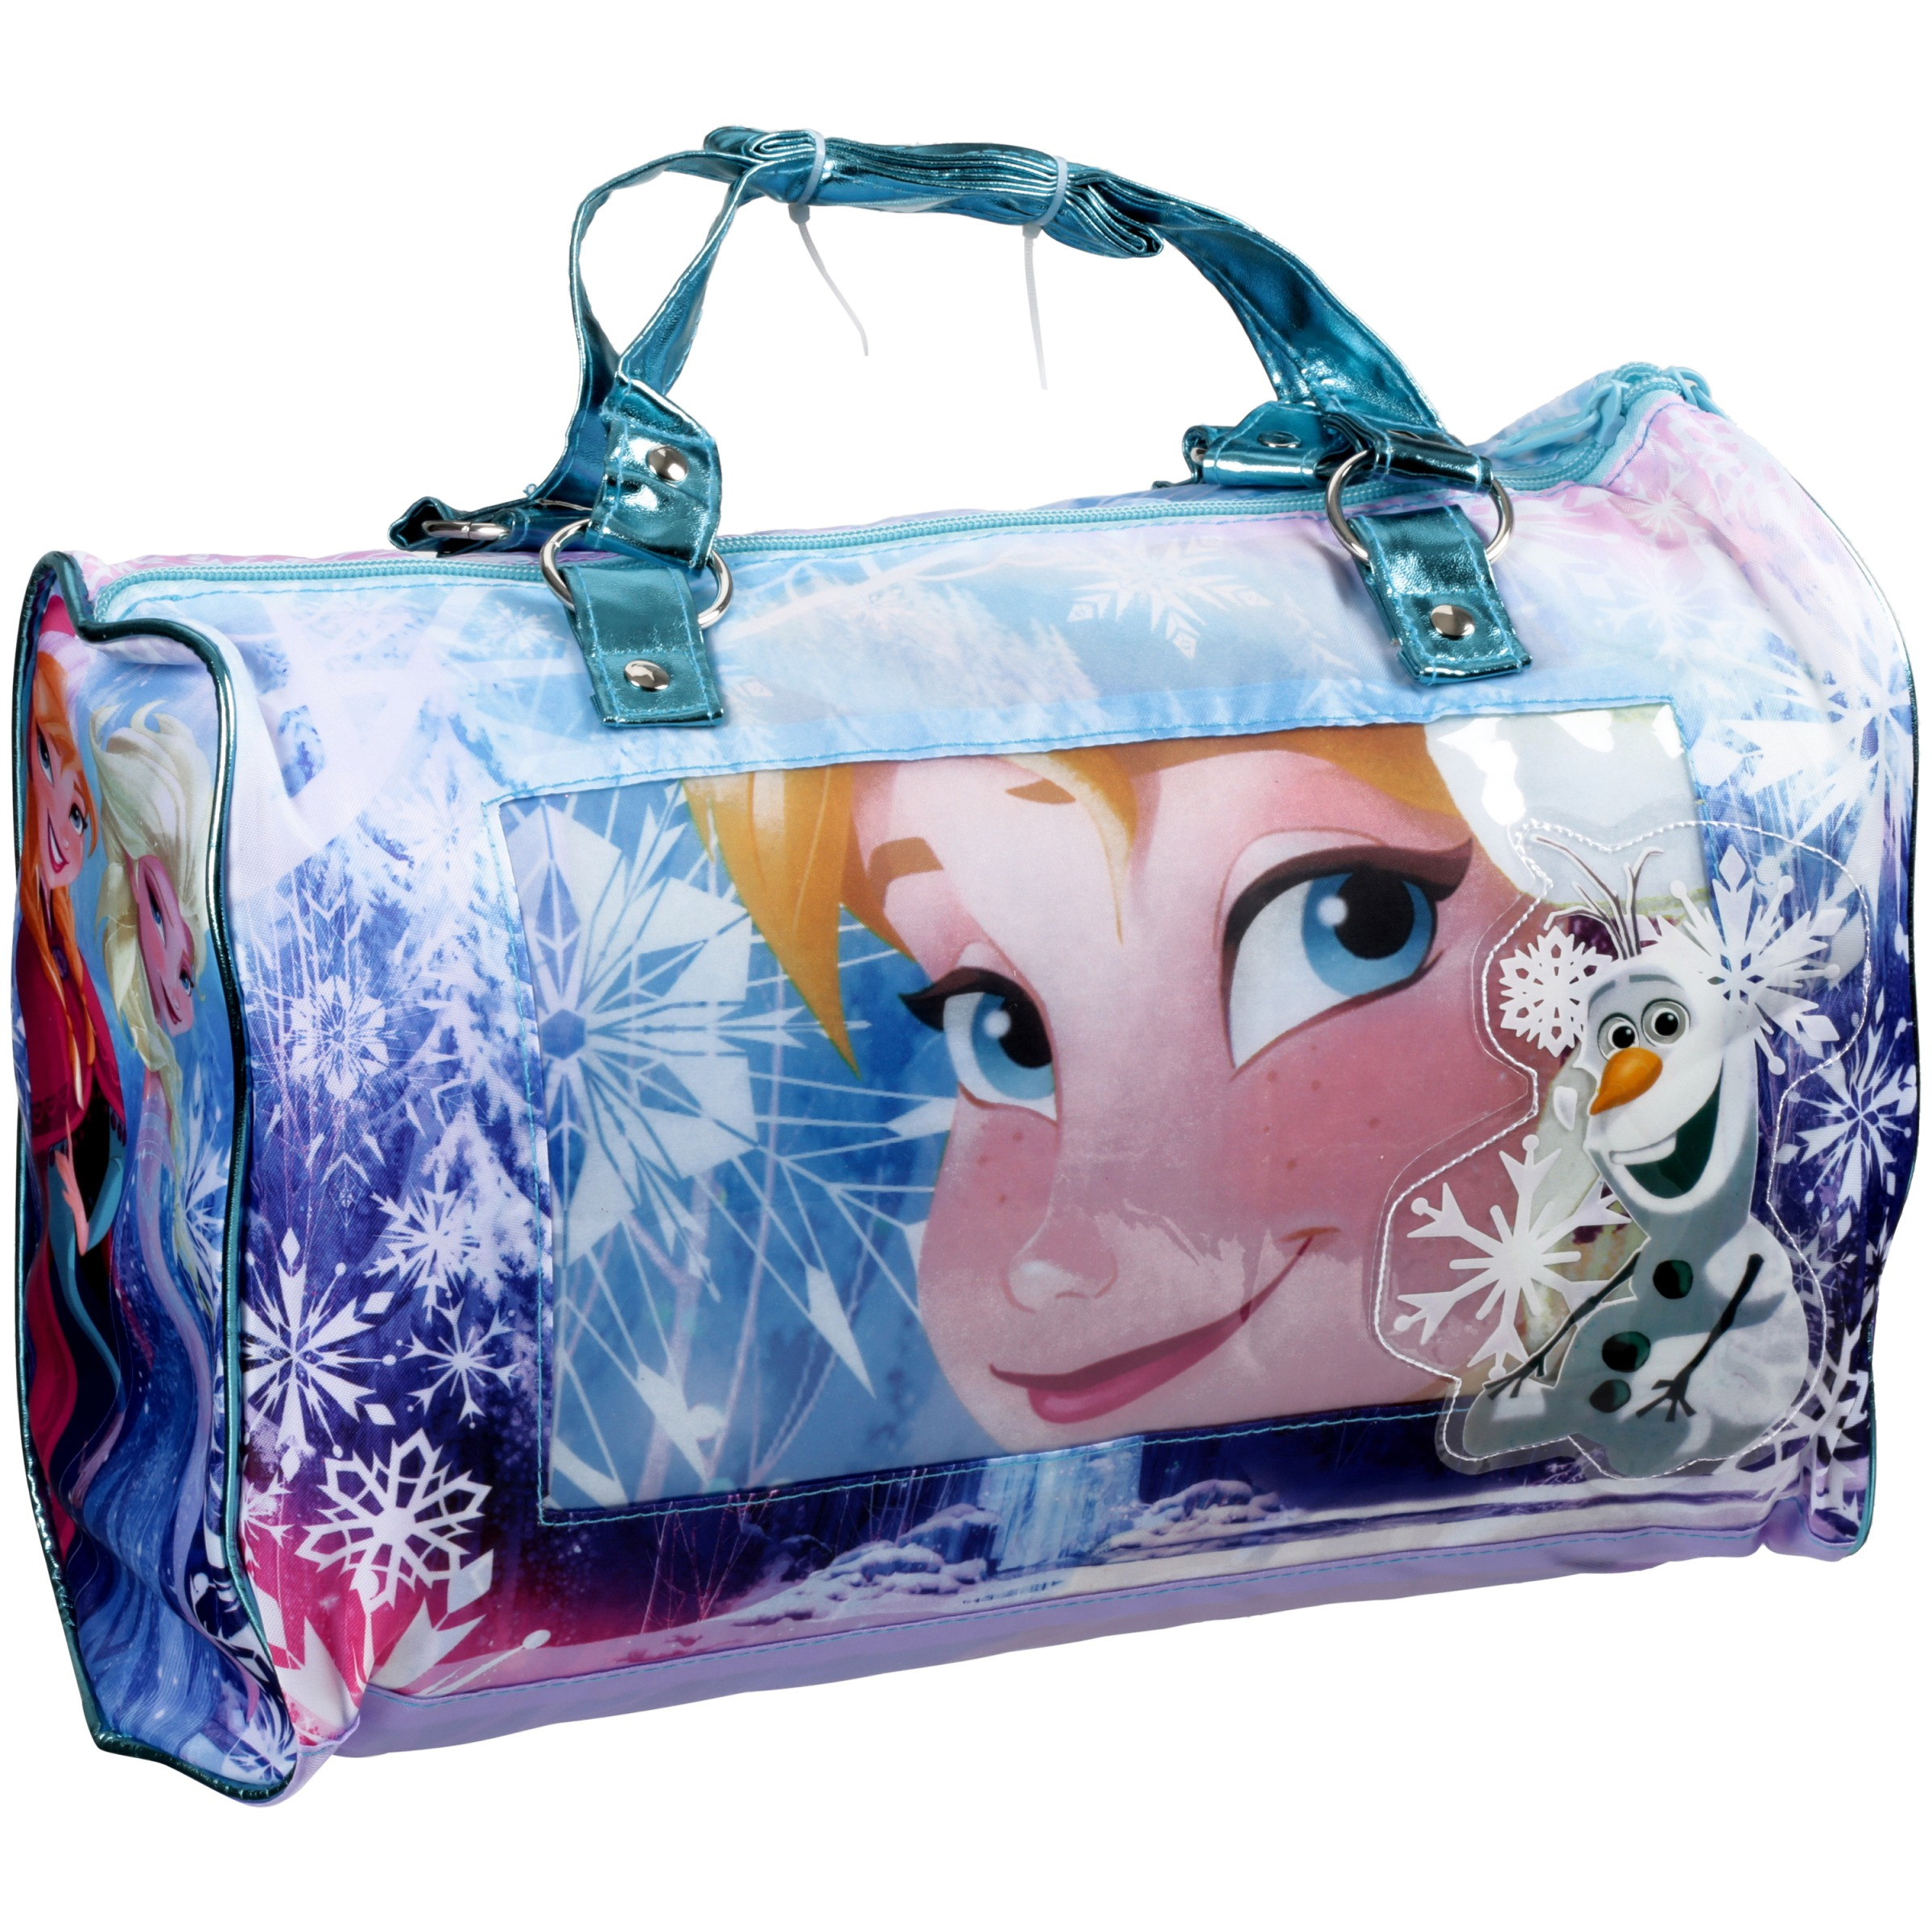 Disney Frozen Sleepover Slumber Nap Mat with Purse and Bonus Eye Mask